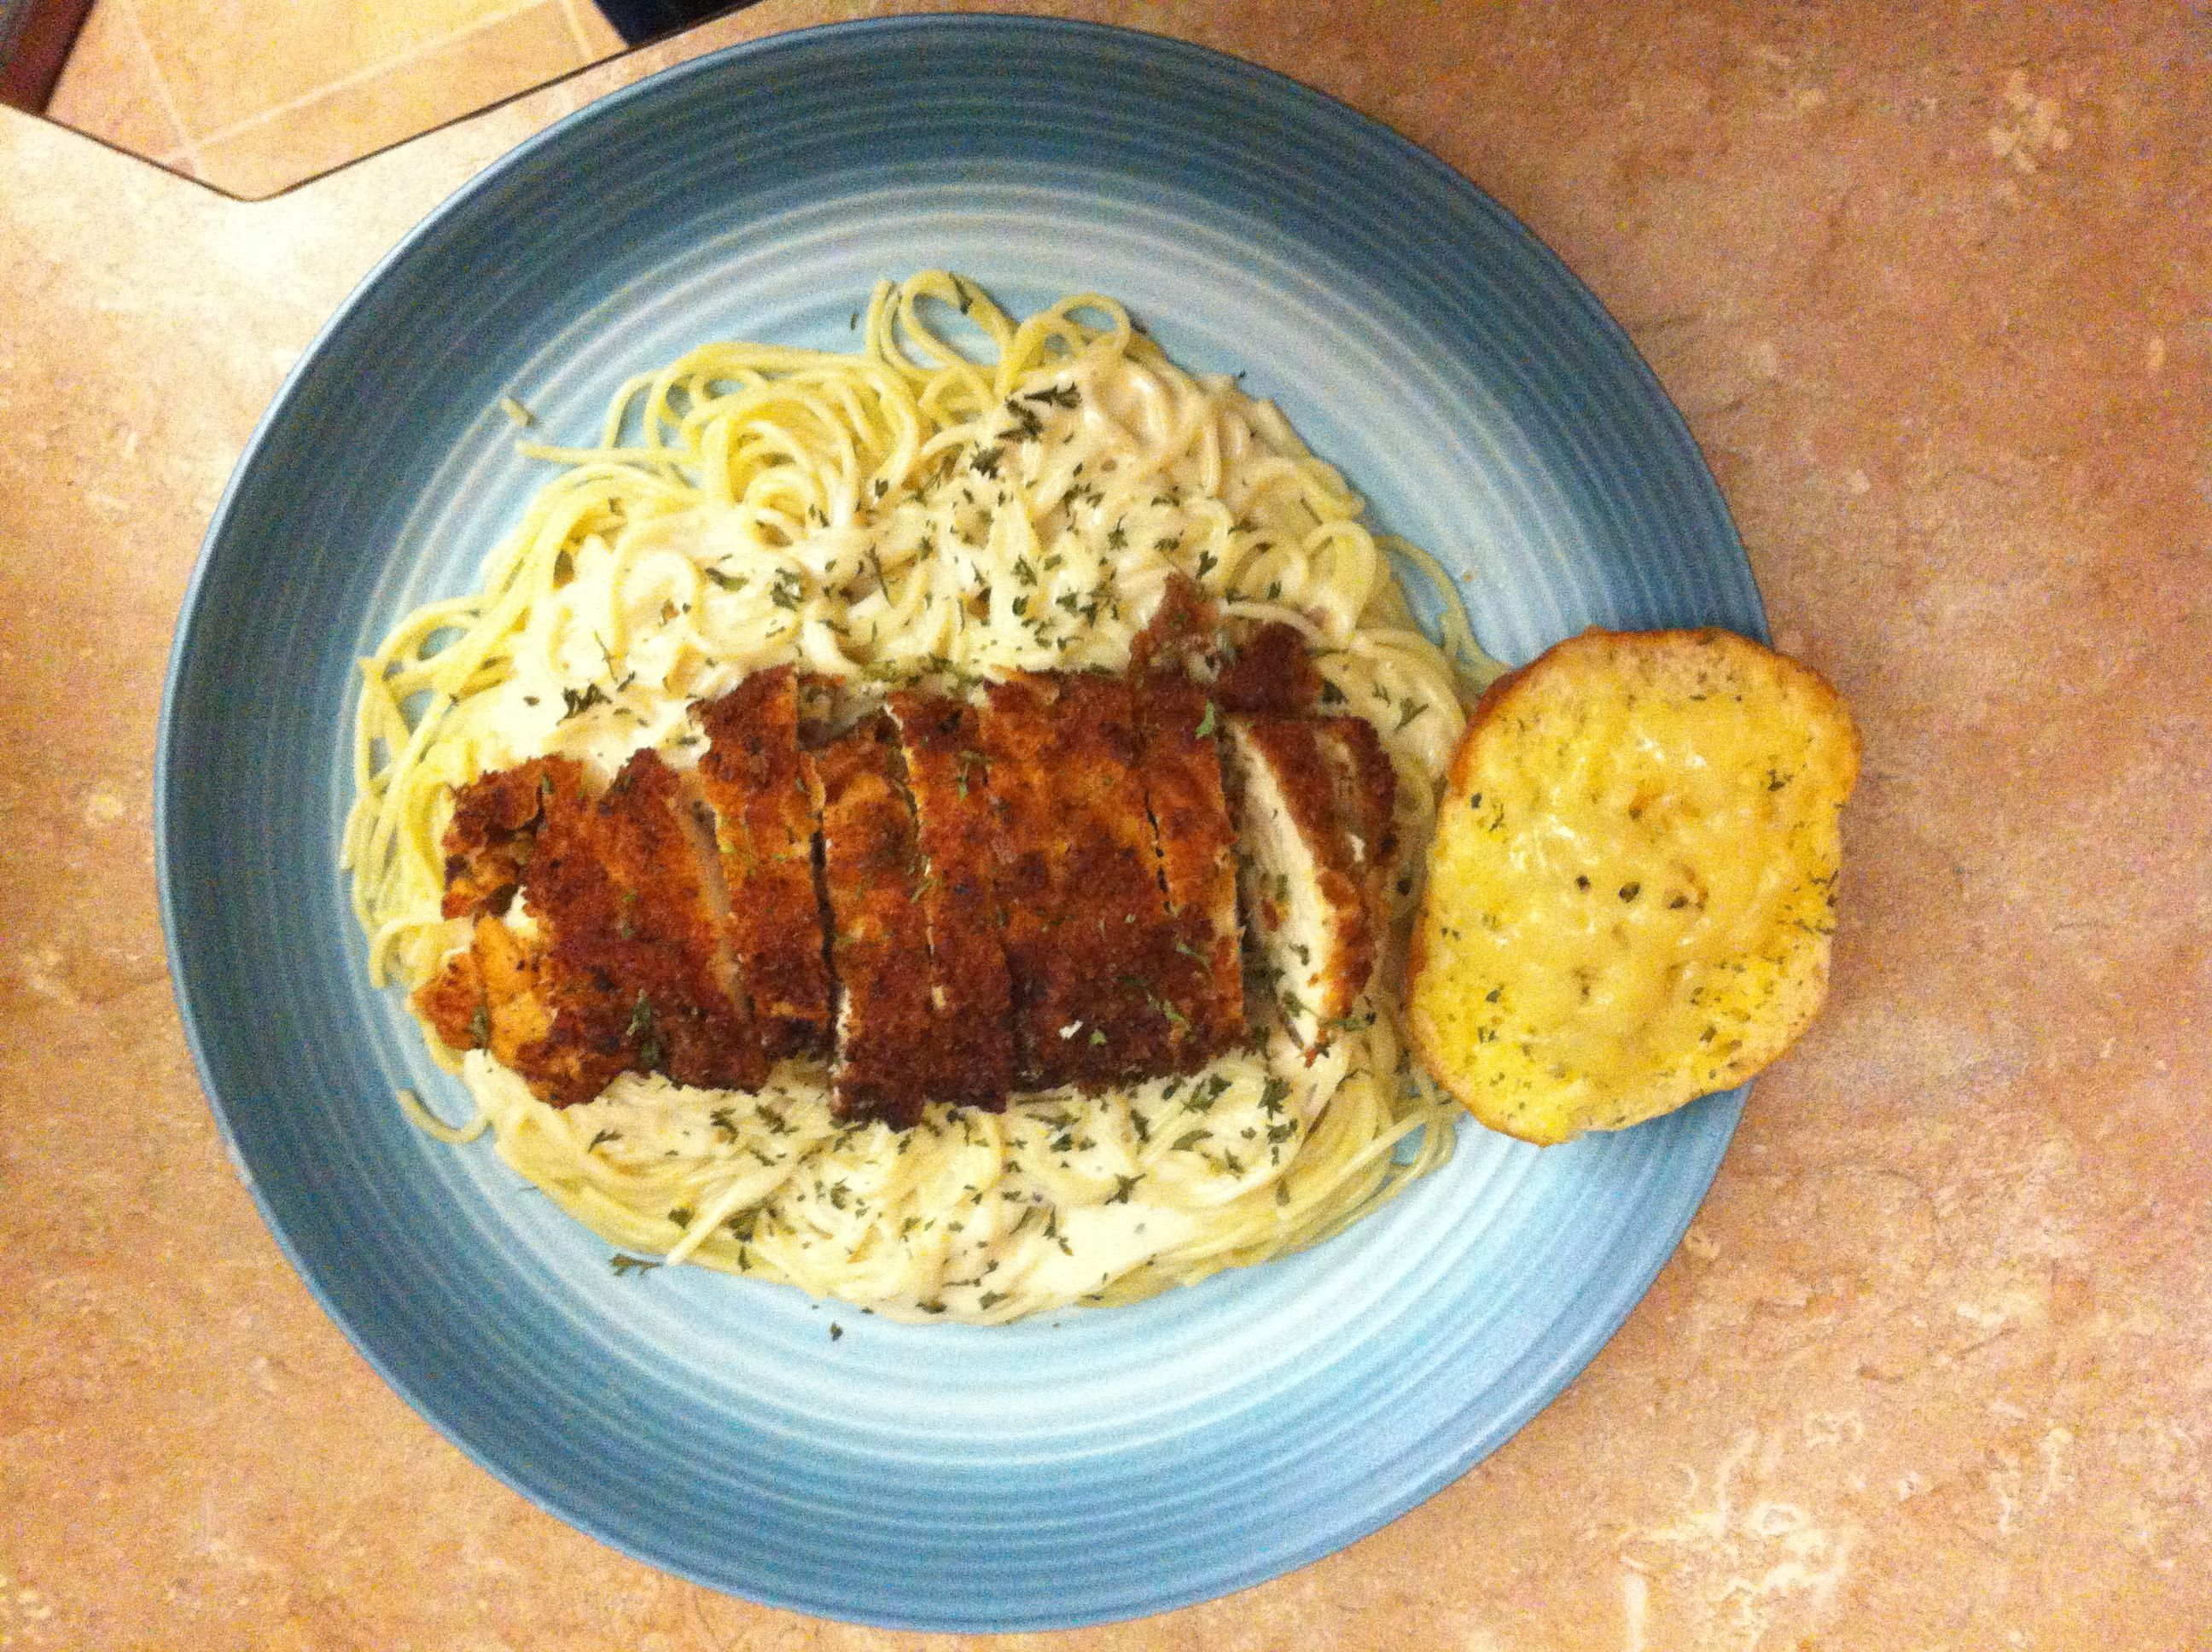 Parmesan Crusted Chicken Over Alfredo Sauce And Angel Hair Pasta Crusted Chicken Parmesan Crusted Chicken Food